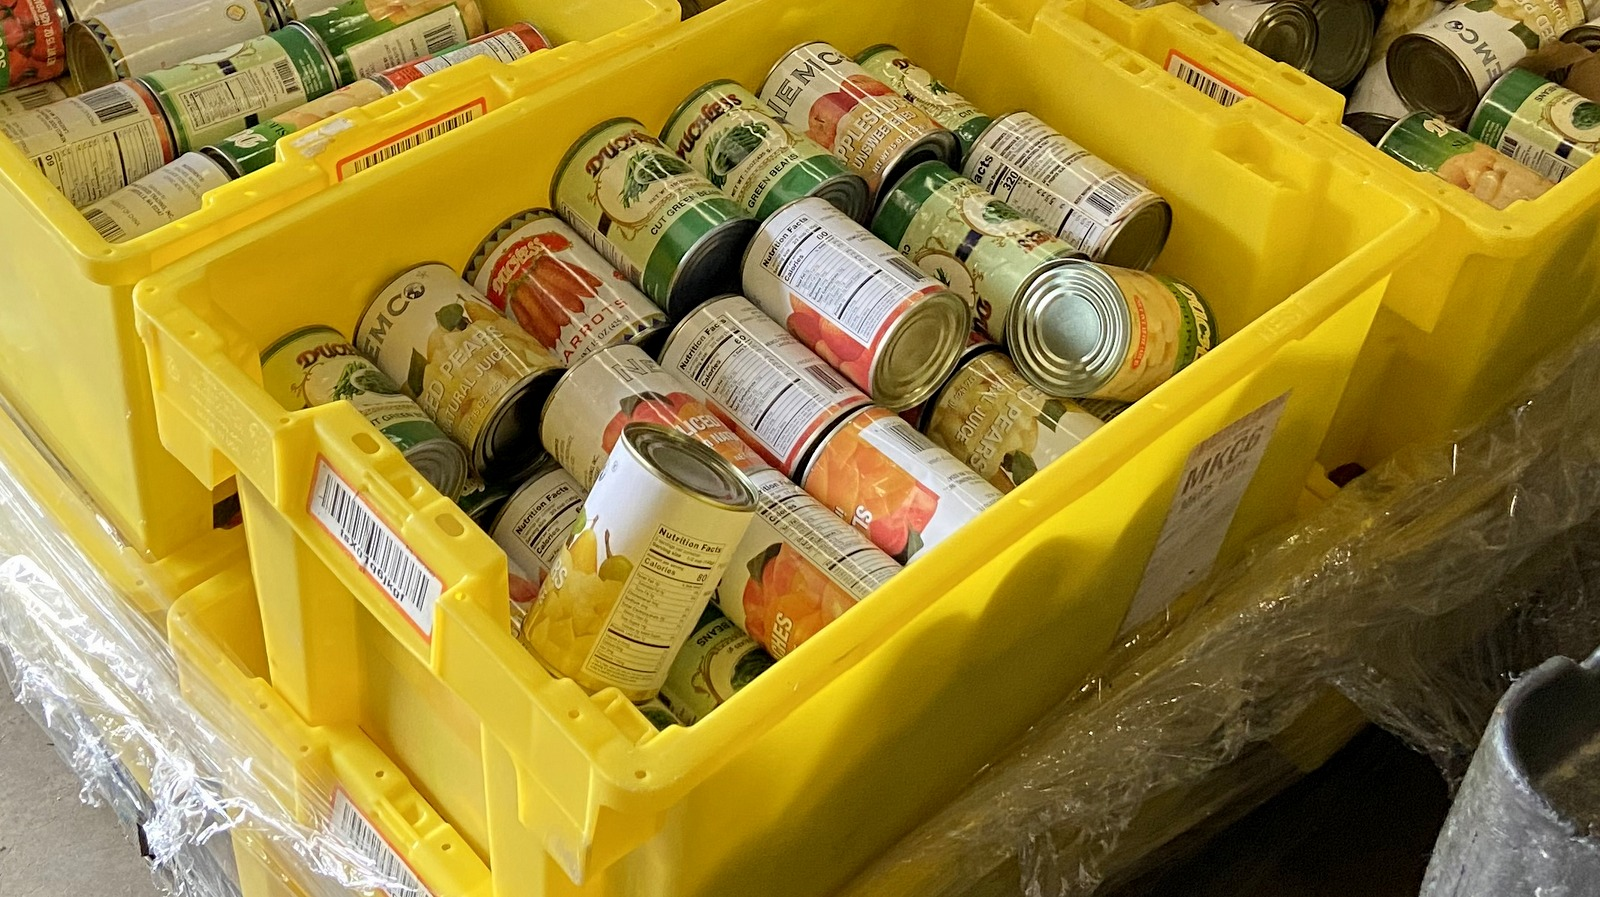 Tomato soup, canned pears and green beans and other non-perishable food, ready for distribution. (Timothy Dashiell)